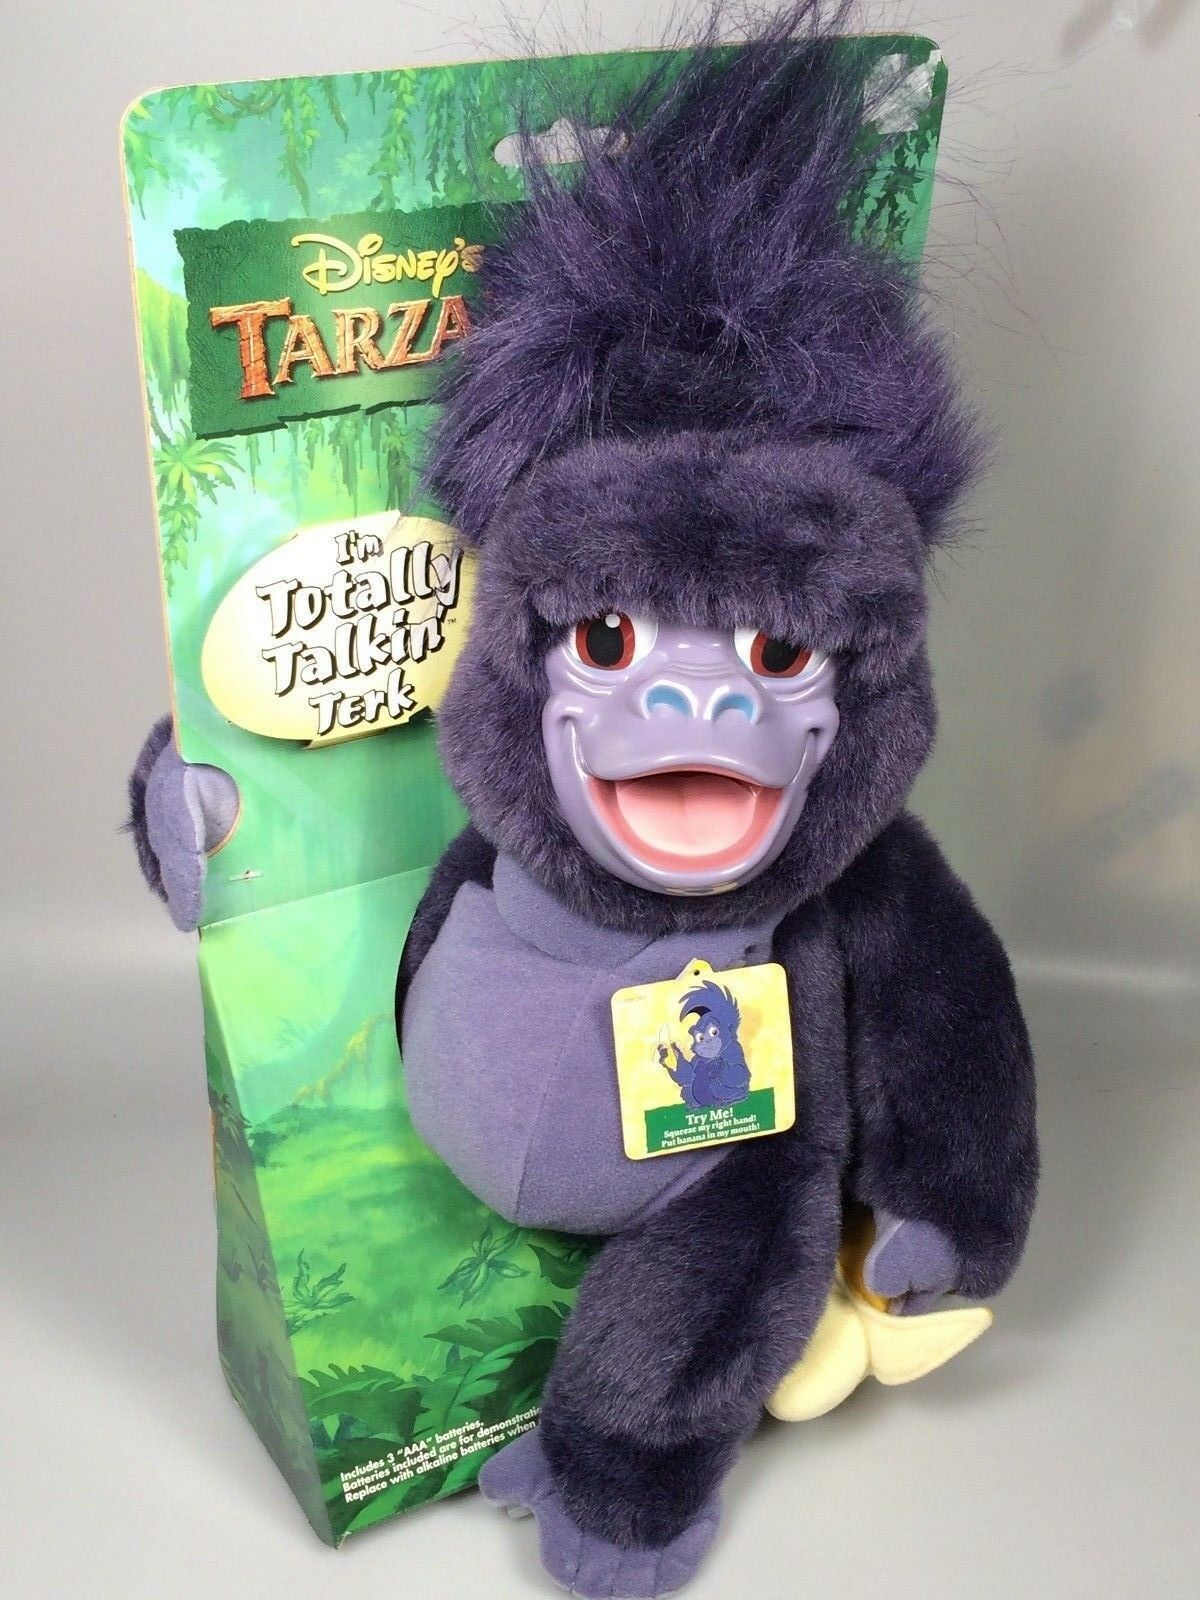 Disney Tarzan Monkey talking terk Purple plush stuffed animal NOS NEW